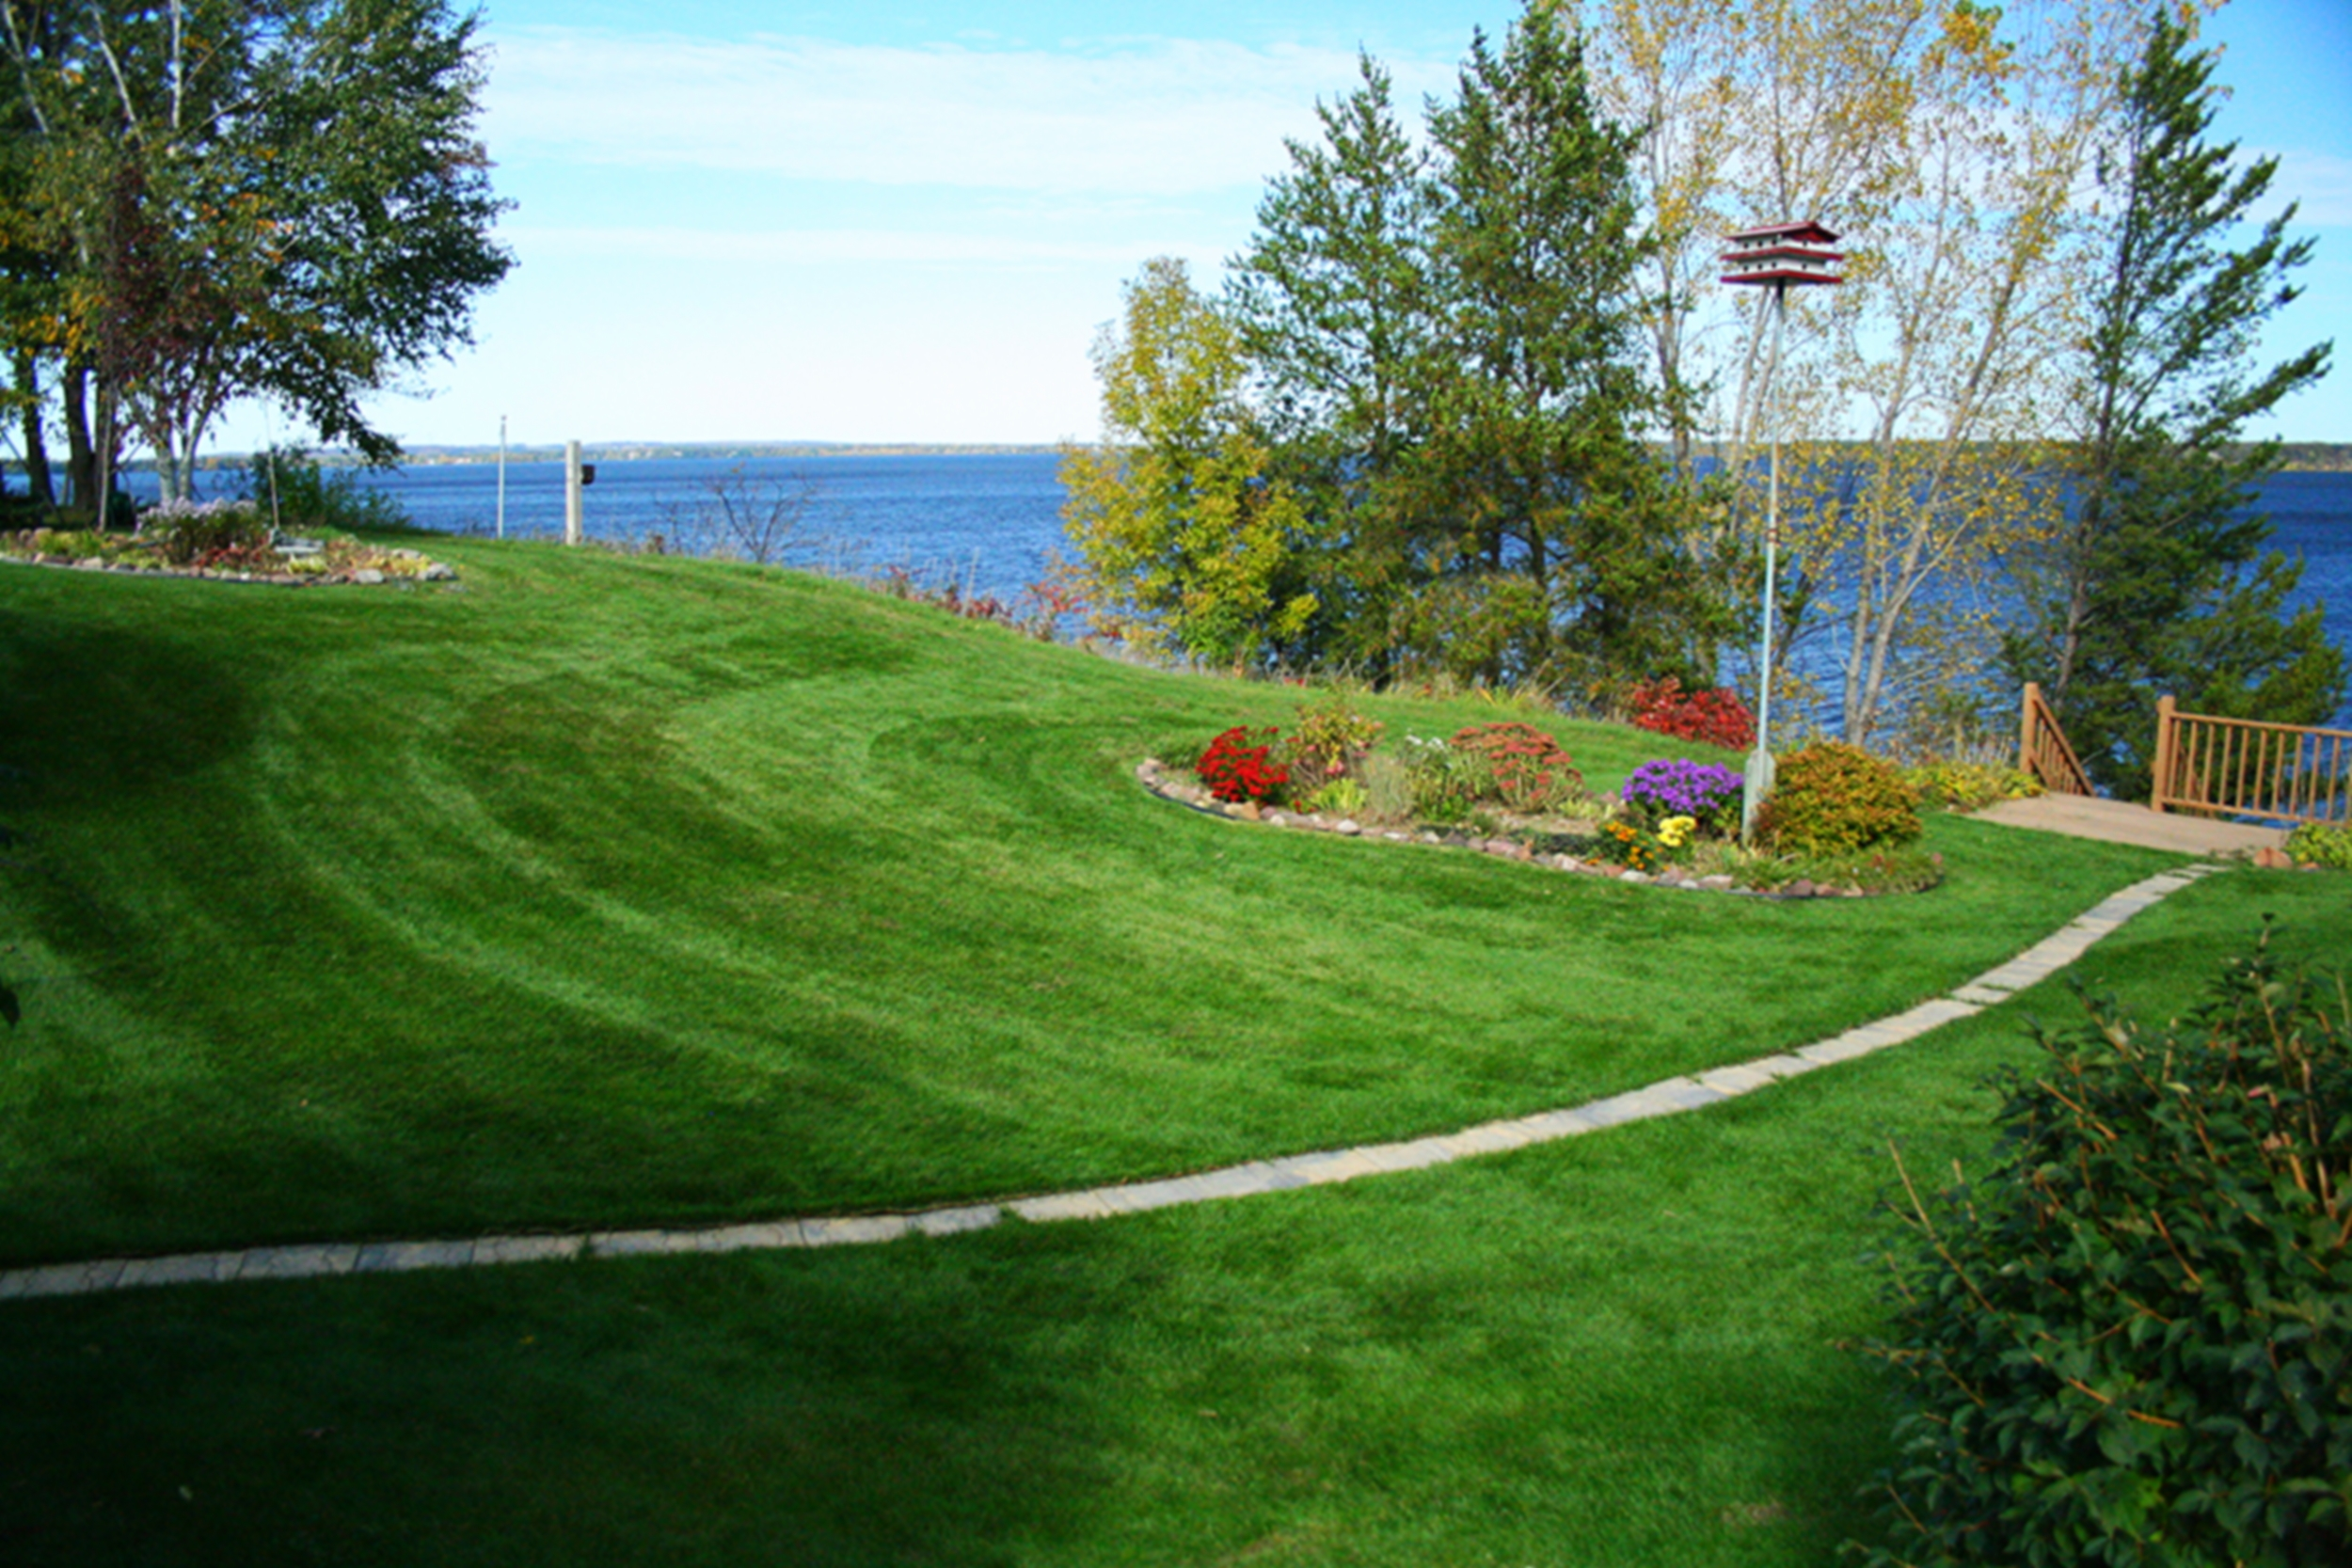 Ultimate Lawns - Blowing - Mclean/Chippew Falls